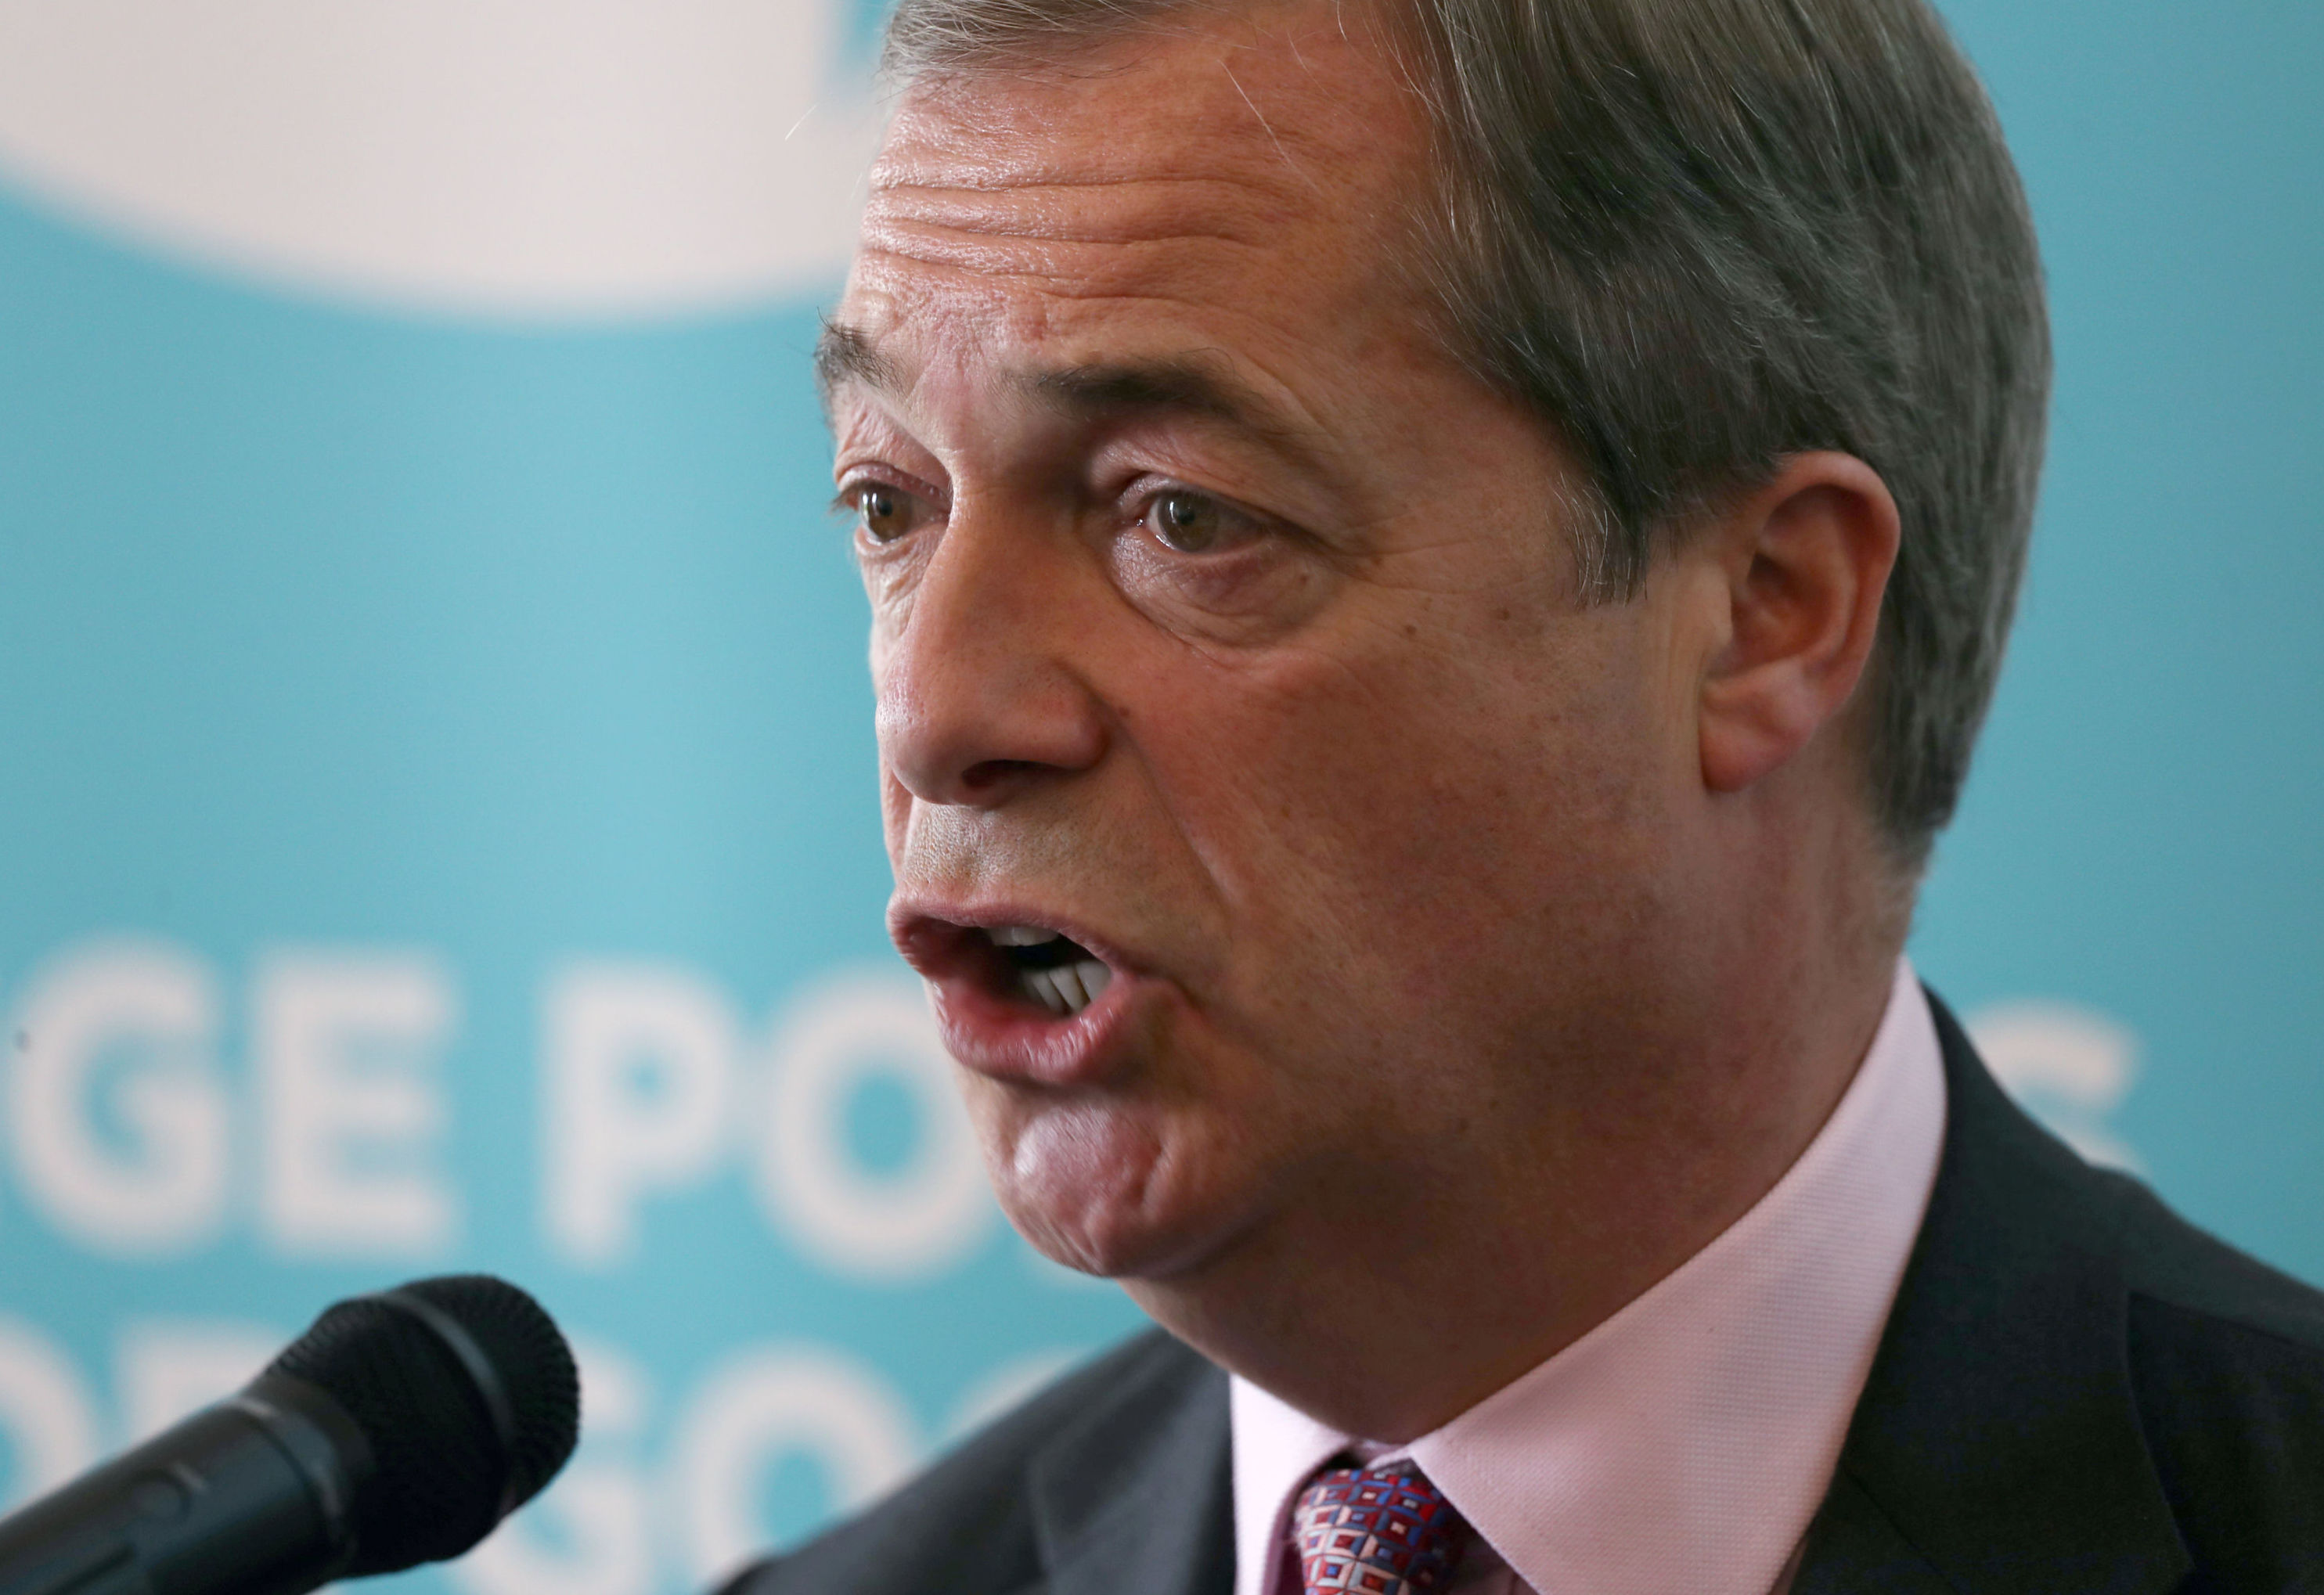 Leader of the Brexit Party Nigel Farage speaks at Brexit Party's news conference in London, Britain, June 24, 2019.